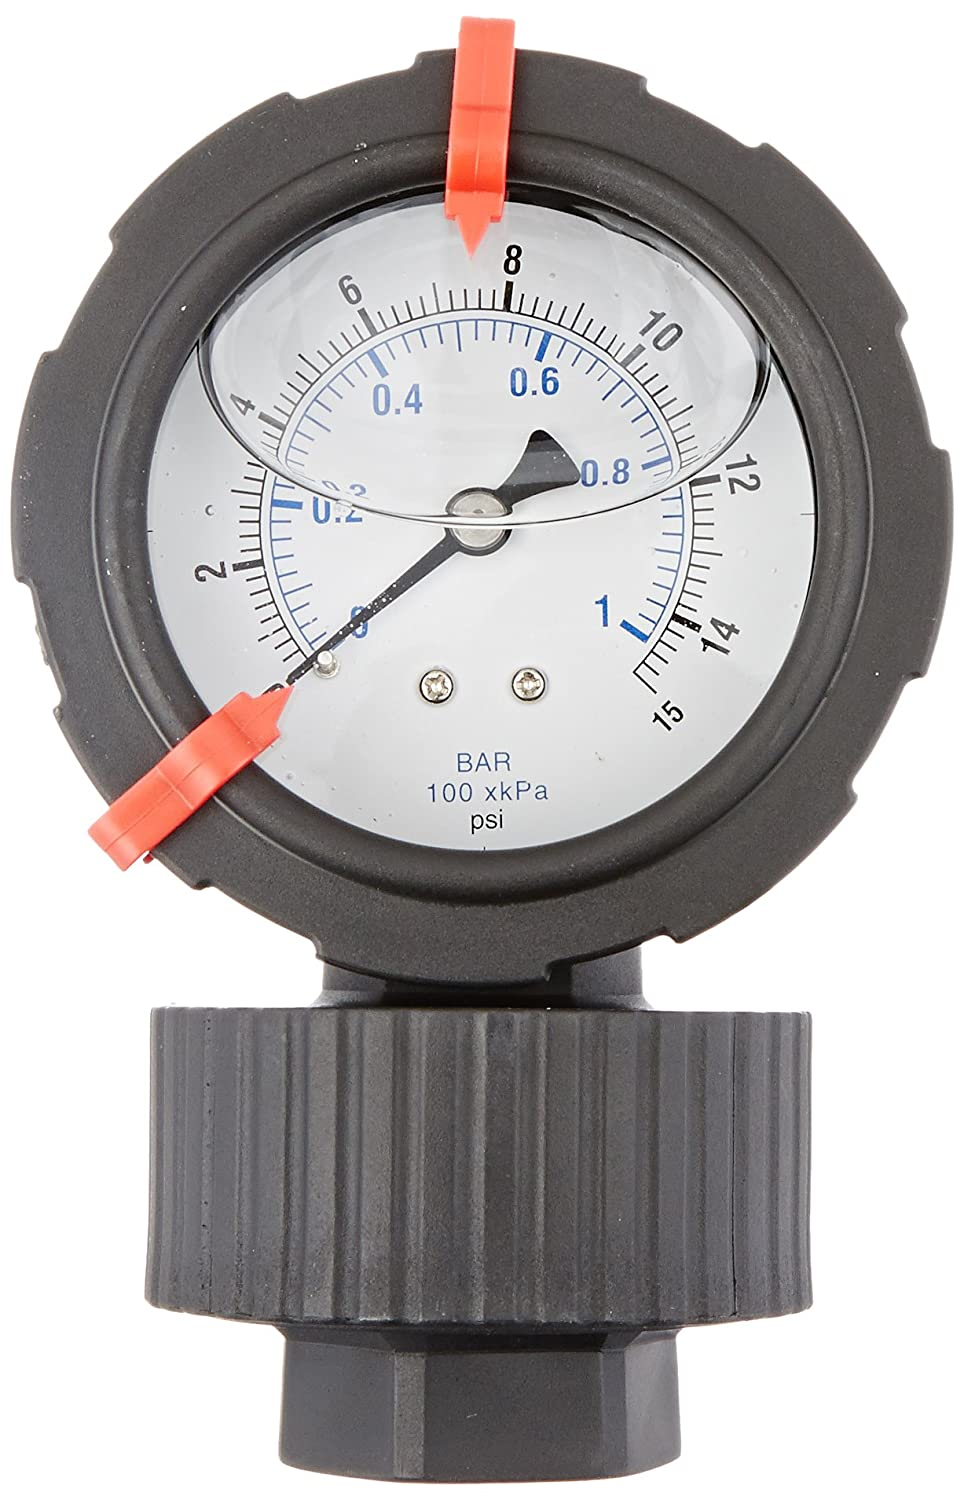 1//2 Female NPT Connection Size and Polycarbonate Lens Polypropylene Lower Housing 0//15 psi Range Viton Diaphragm Bottom Mount Glycerine Filled Molded Pressure Gauge and Diaphragm Seal with a Polypropylene Case PIC Gauge 701LDS-252B  2.5 Dial